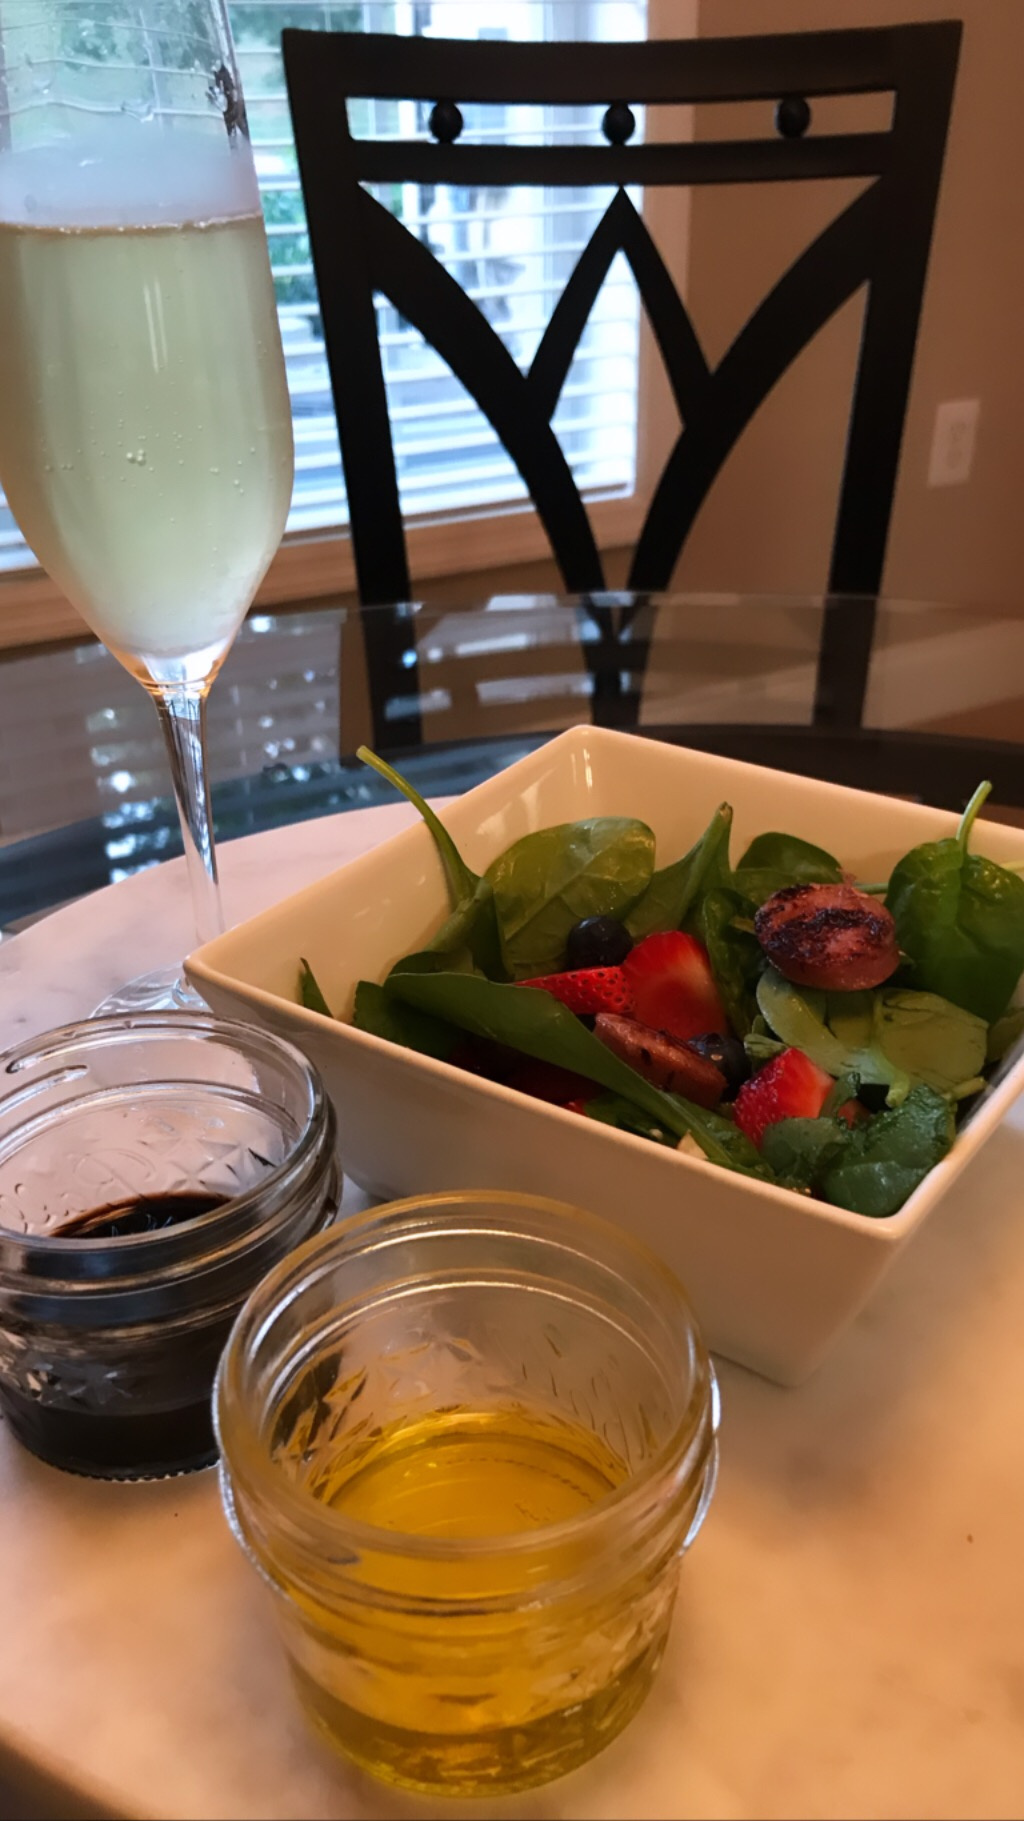 Pairs well with a glass of extra-dry Brut. (: - I dress mine with just a drizzle of extra virgin olive oil. My husband likes balsamic vinaigrette. We also enjoy it with raspberry vinaigrette and red wine vinaigrette.